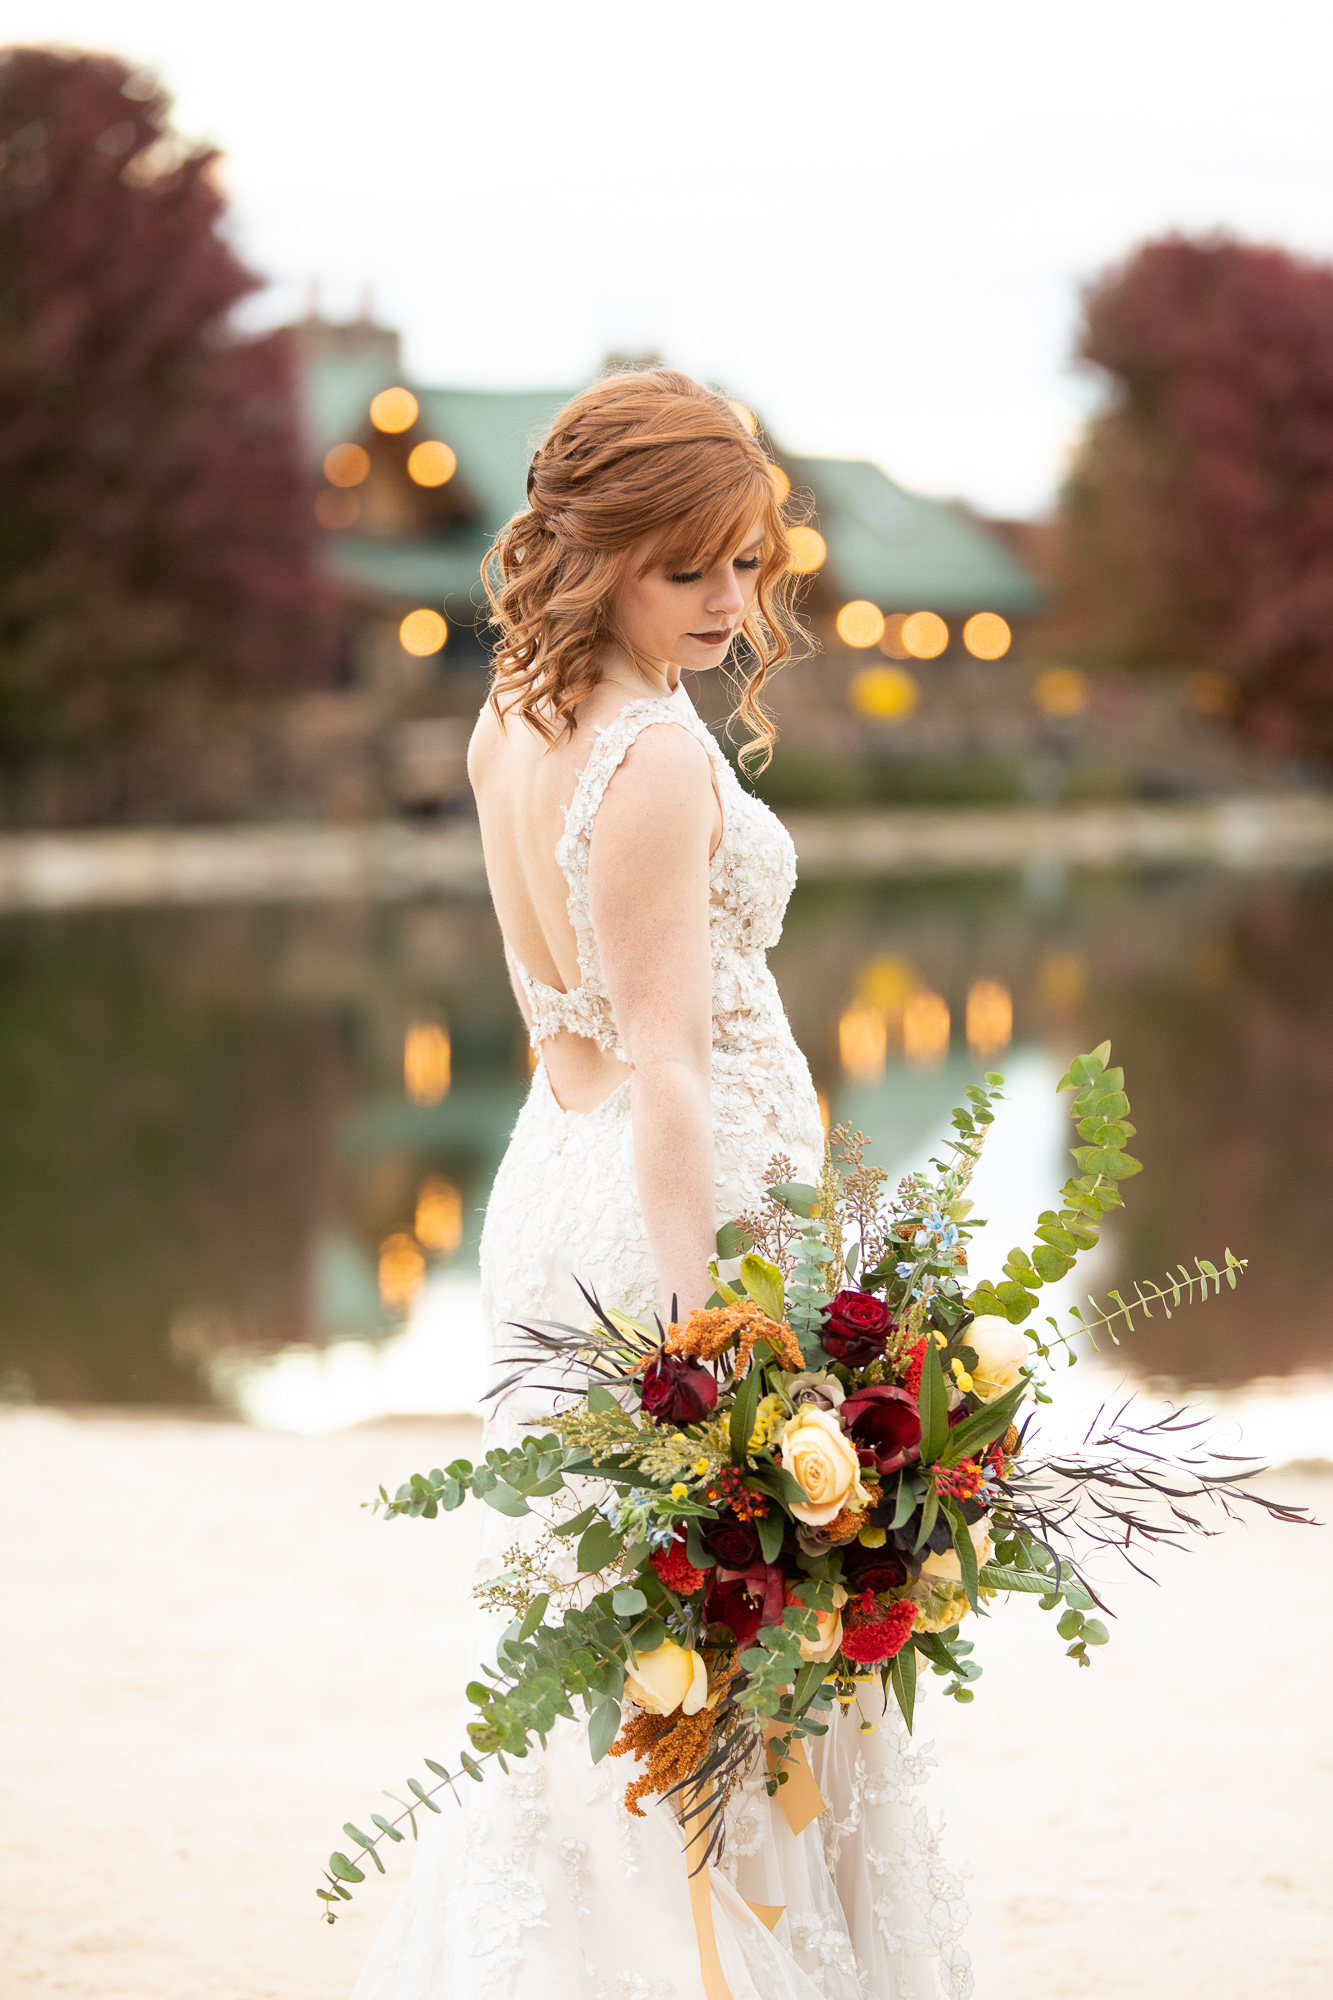 Bride at The Gathering Place at Autumn wedding styled shoot with Bridal Elegance dress.